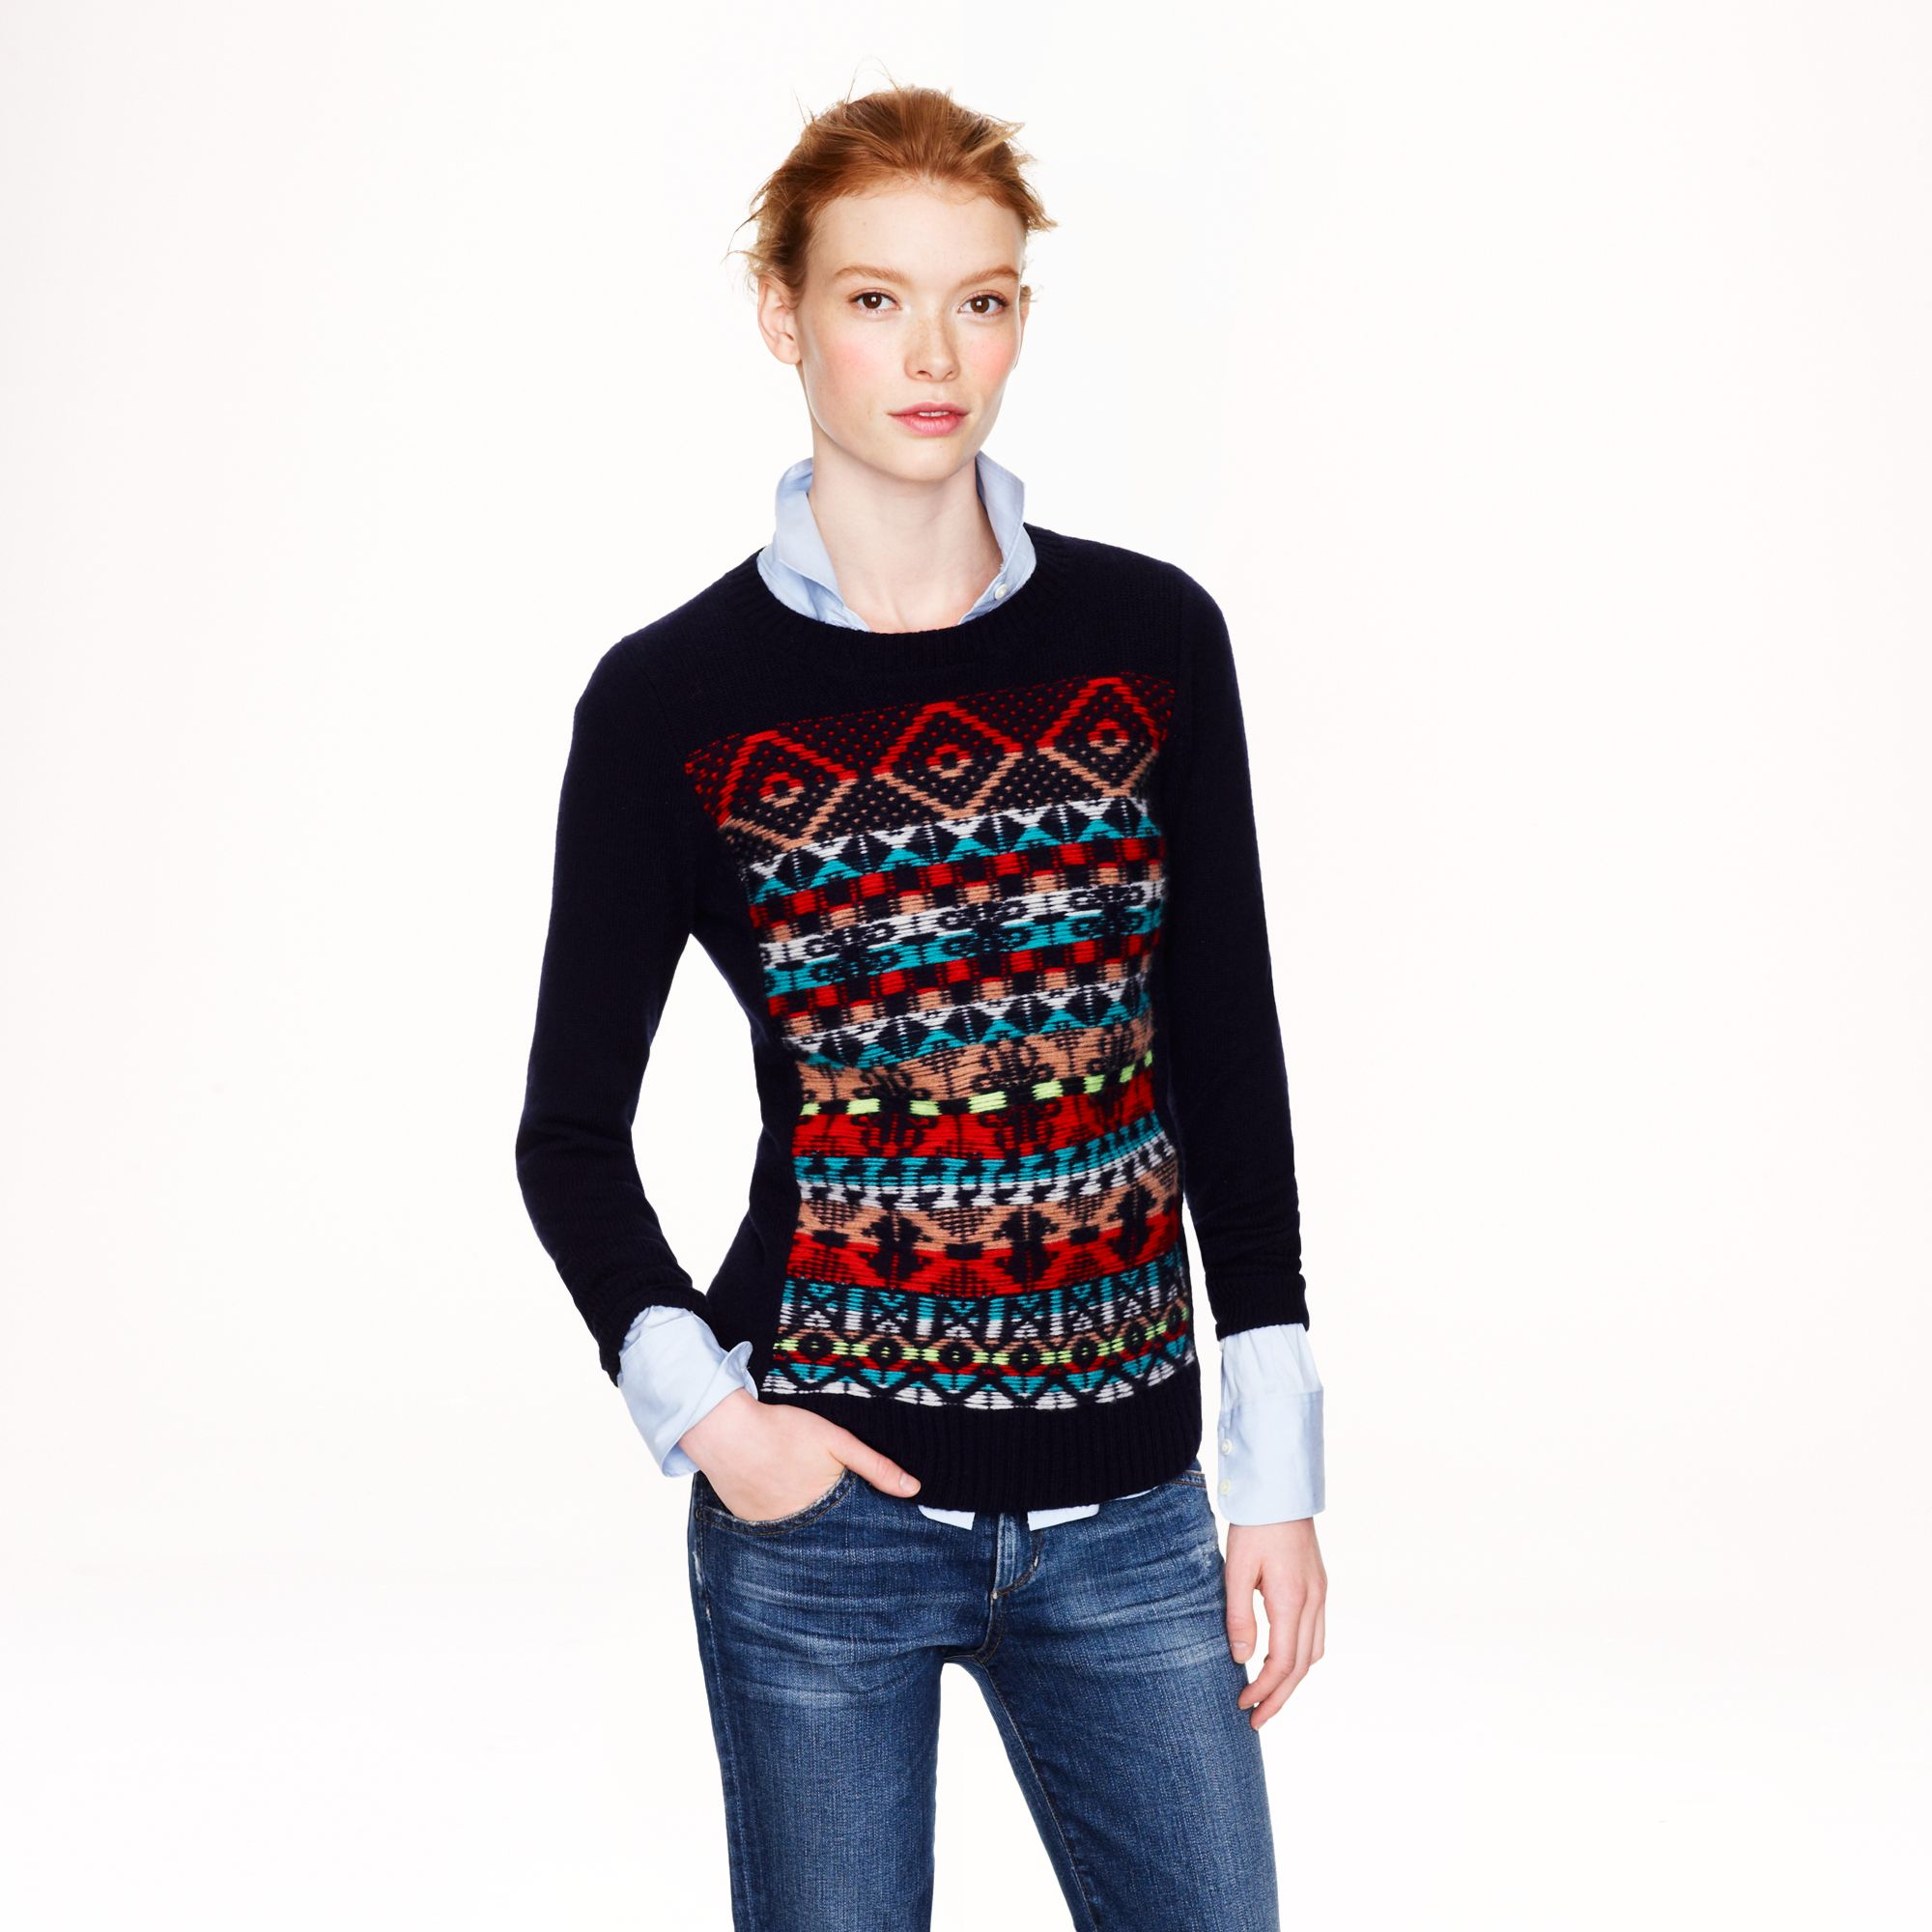 J Crew Jacquard Stitch Fair Isle Sweater Lyst